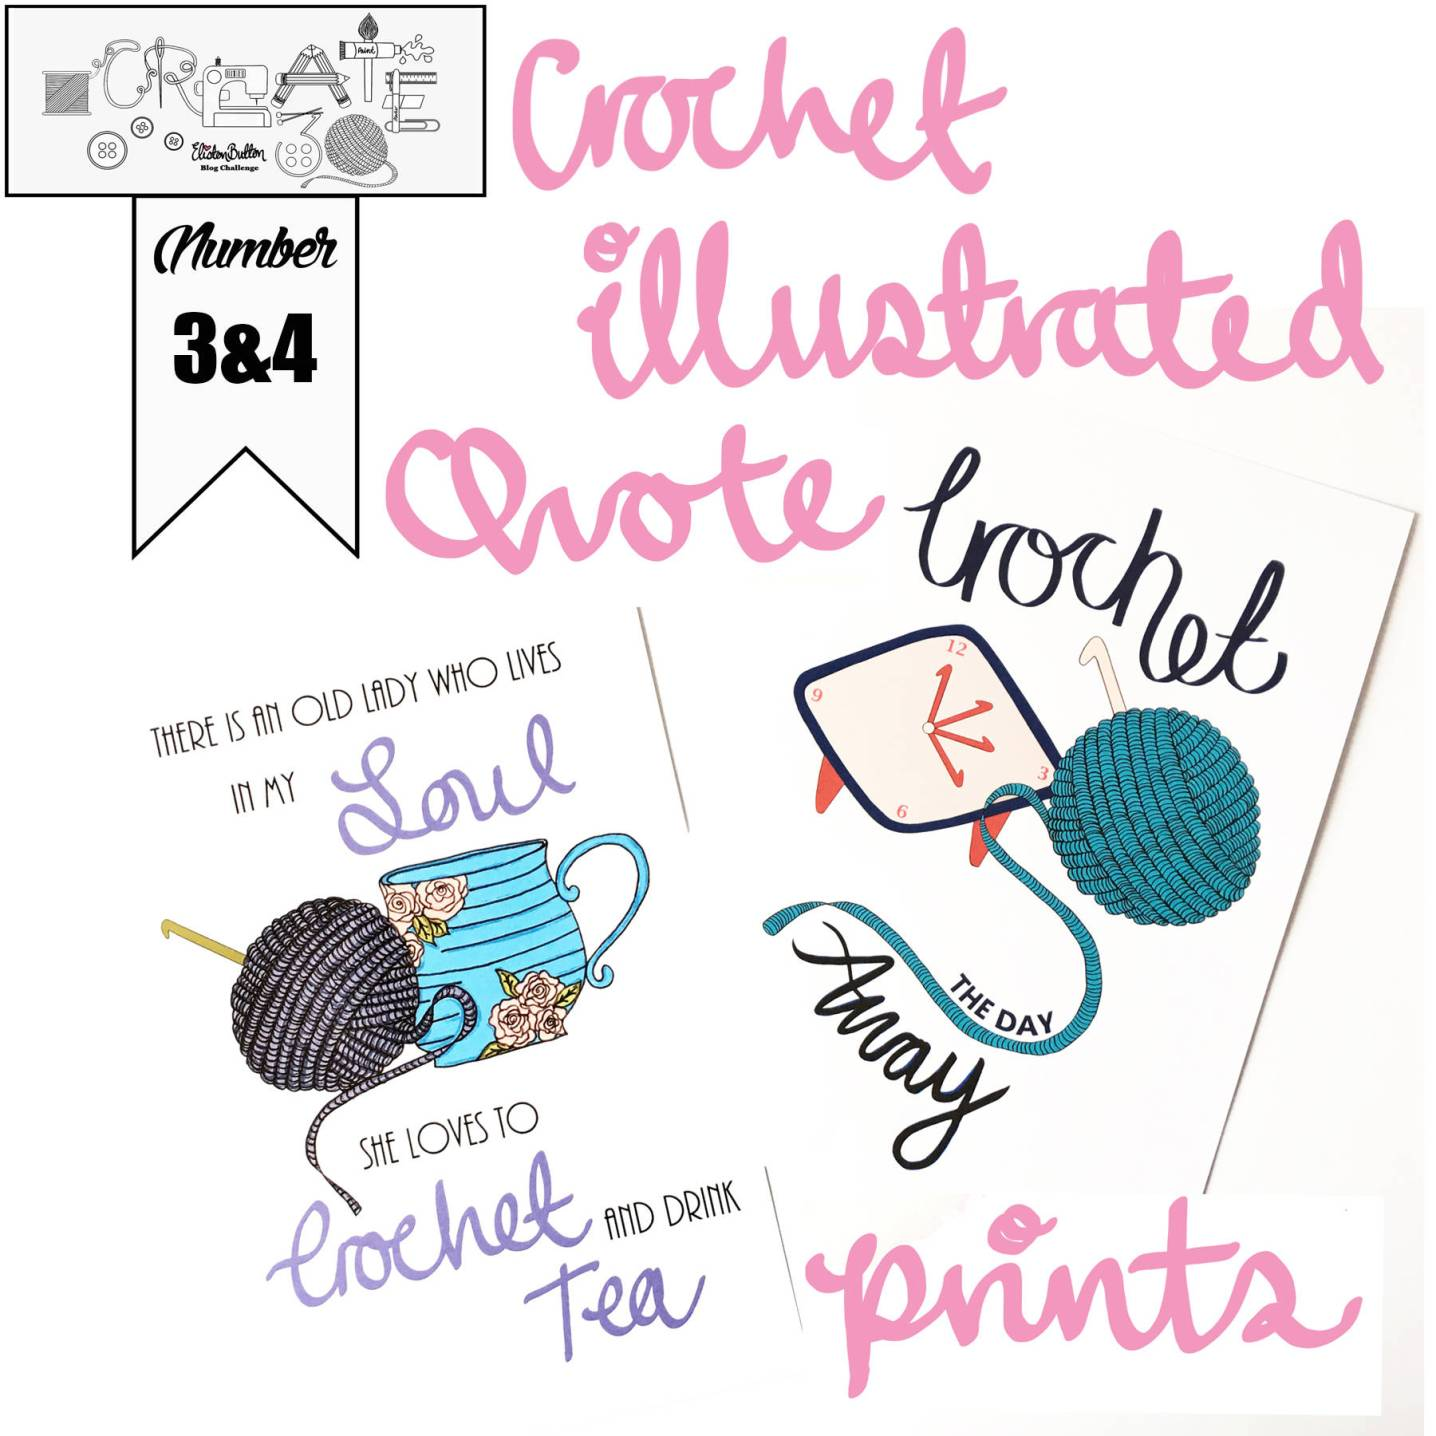 Crochet Illustrated Quote Prints by Eliston Button on Etsy - Around Here…September 2016 at www.elistonbutton.com - Eliston Button - That Crafty Kid – Art, Design, Craft & Adventure.